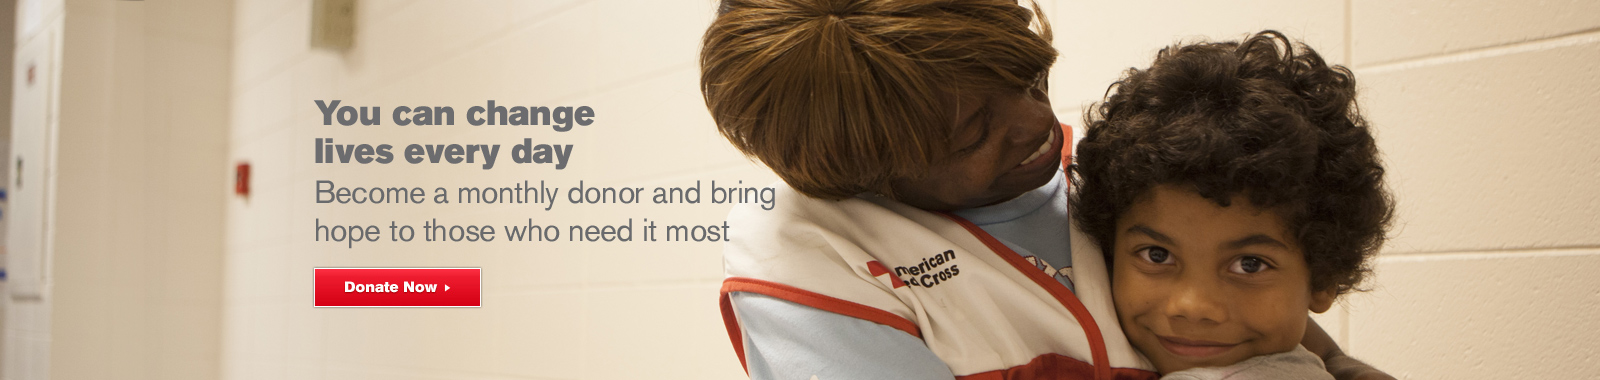 You can change lives every day. Become a monthly donor.